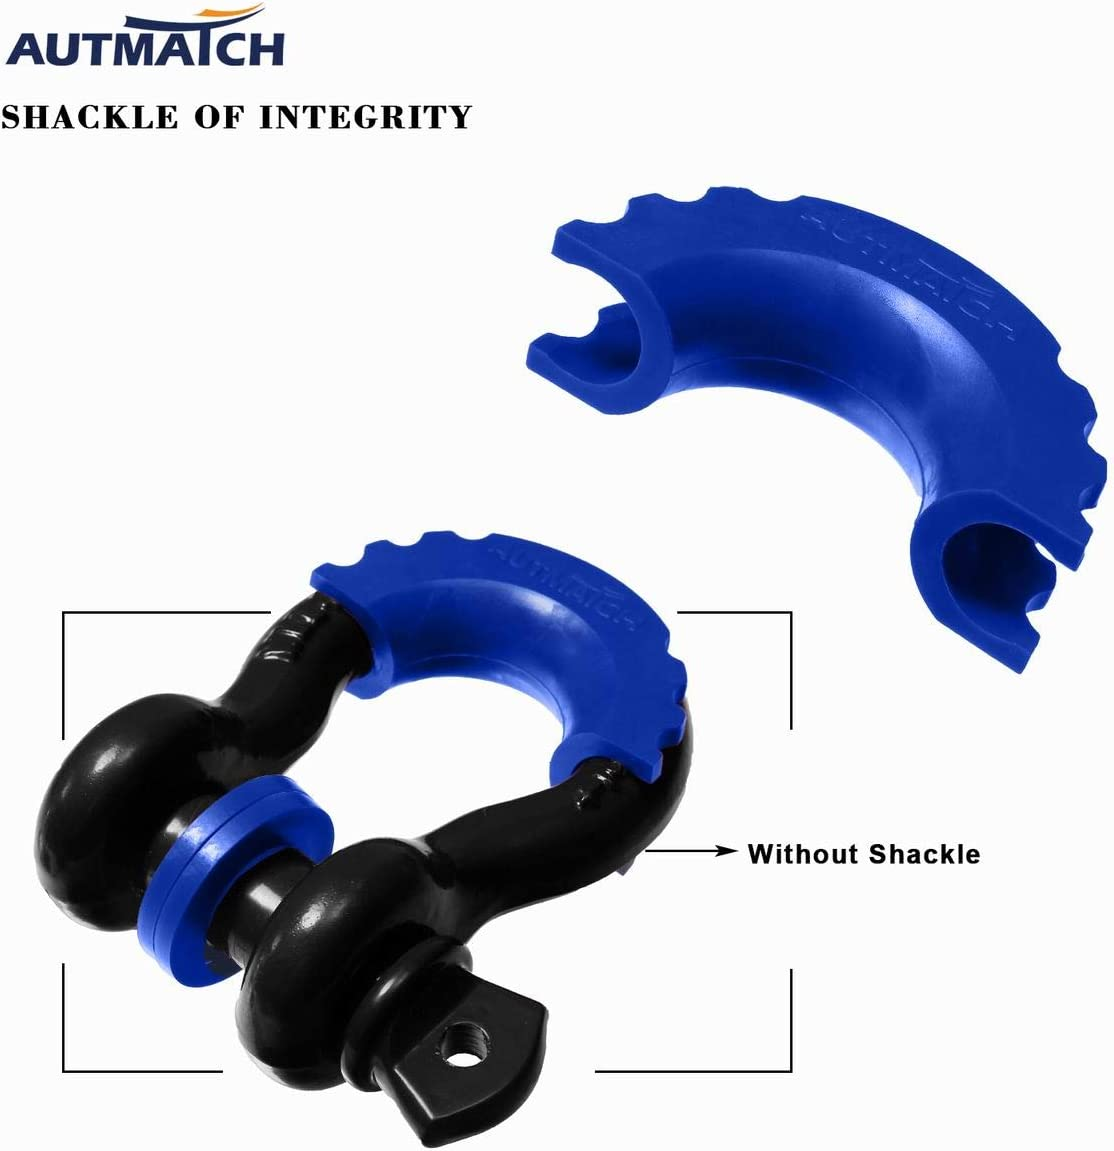 Autmatch Pack of 2 D-Ring Shackle Isolators Washers Kit 2 Rubber Shackle Isolators and 8 Washers Fits 3//4 Inch Shackle Gear Design Rattling Protection Shackle Cover Blue